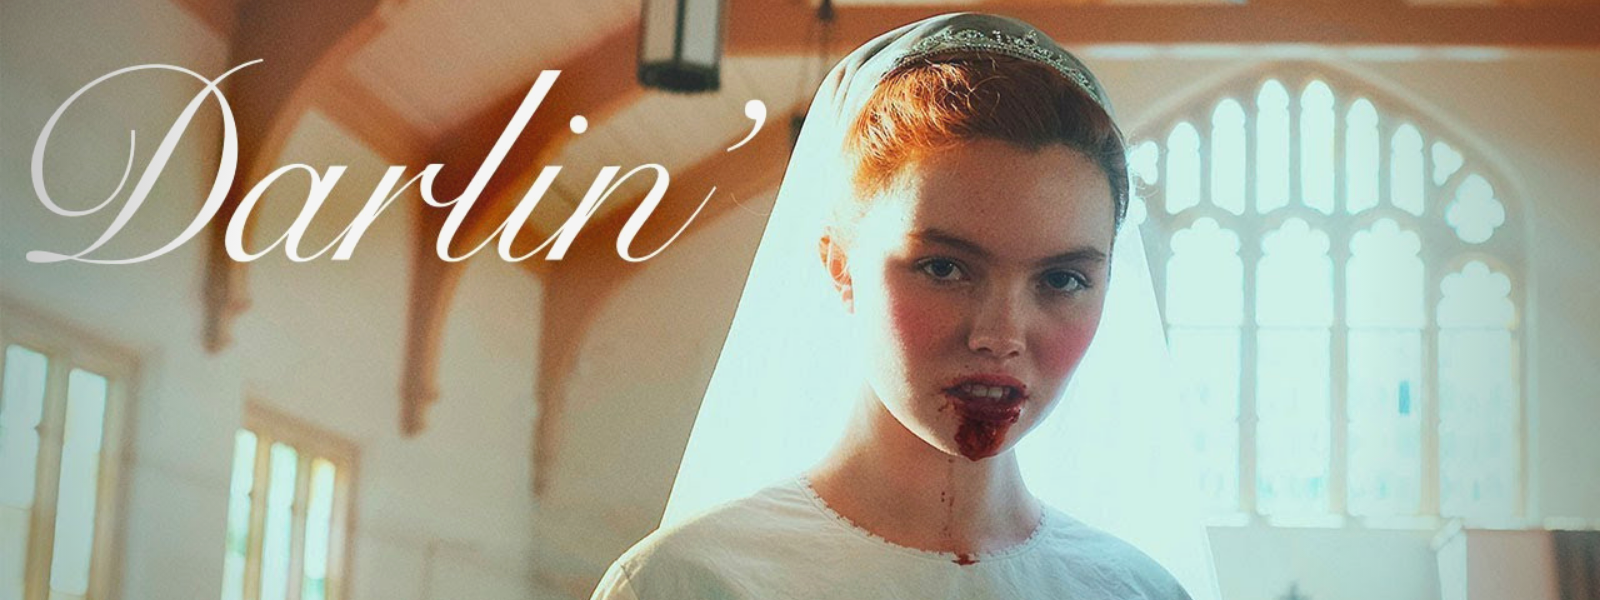 darlin' movie header image